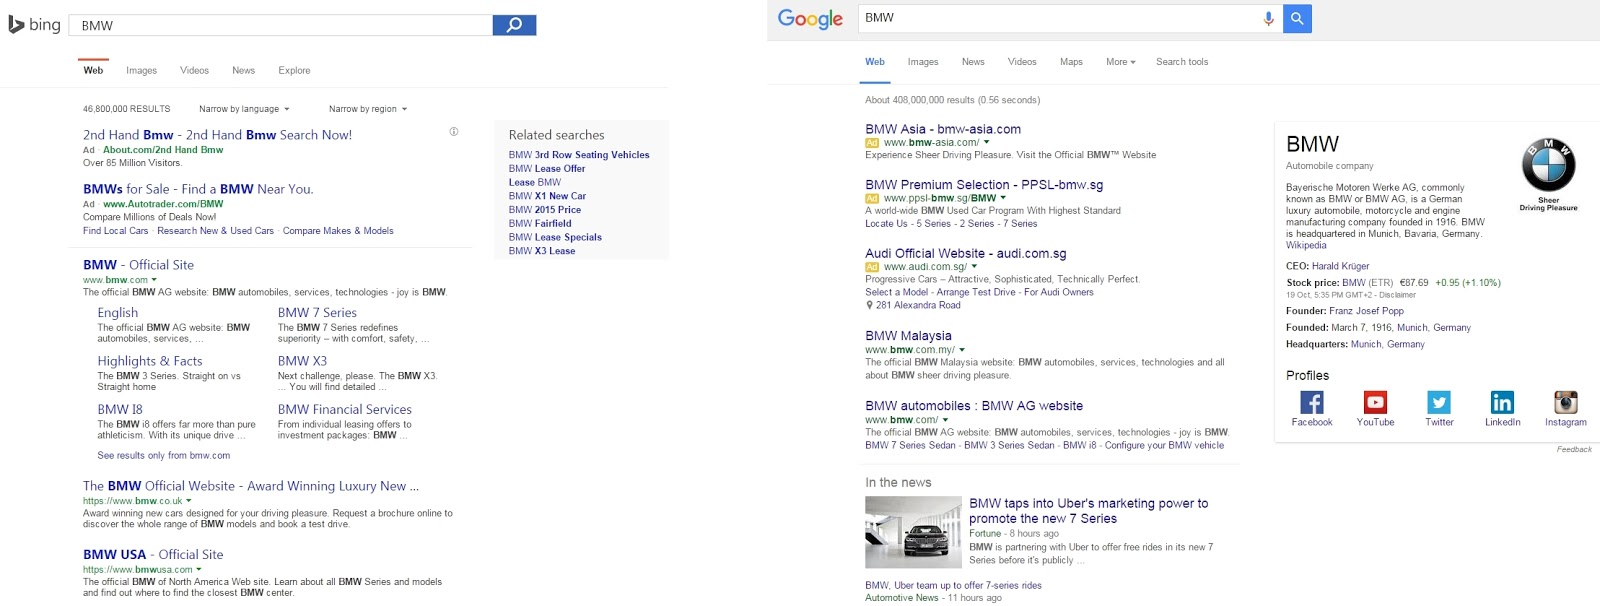 bing-vs-google-bmw-october-2015